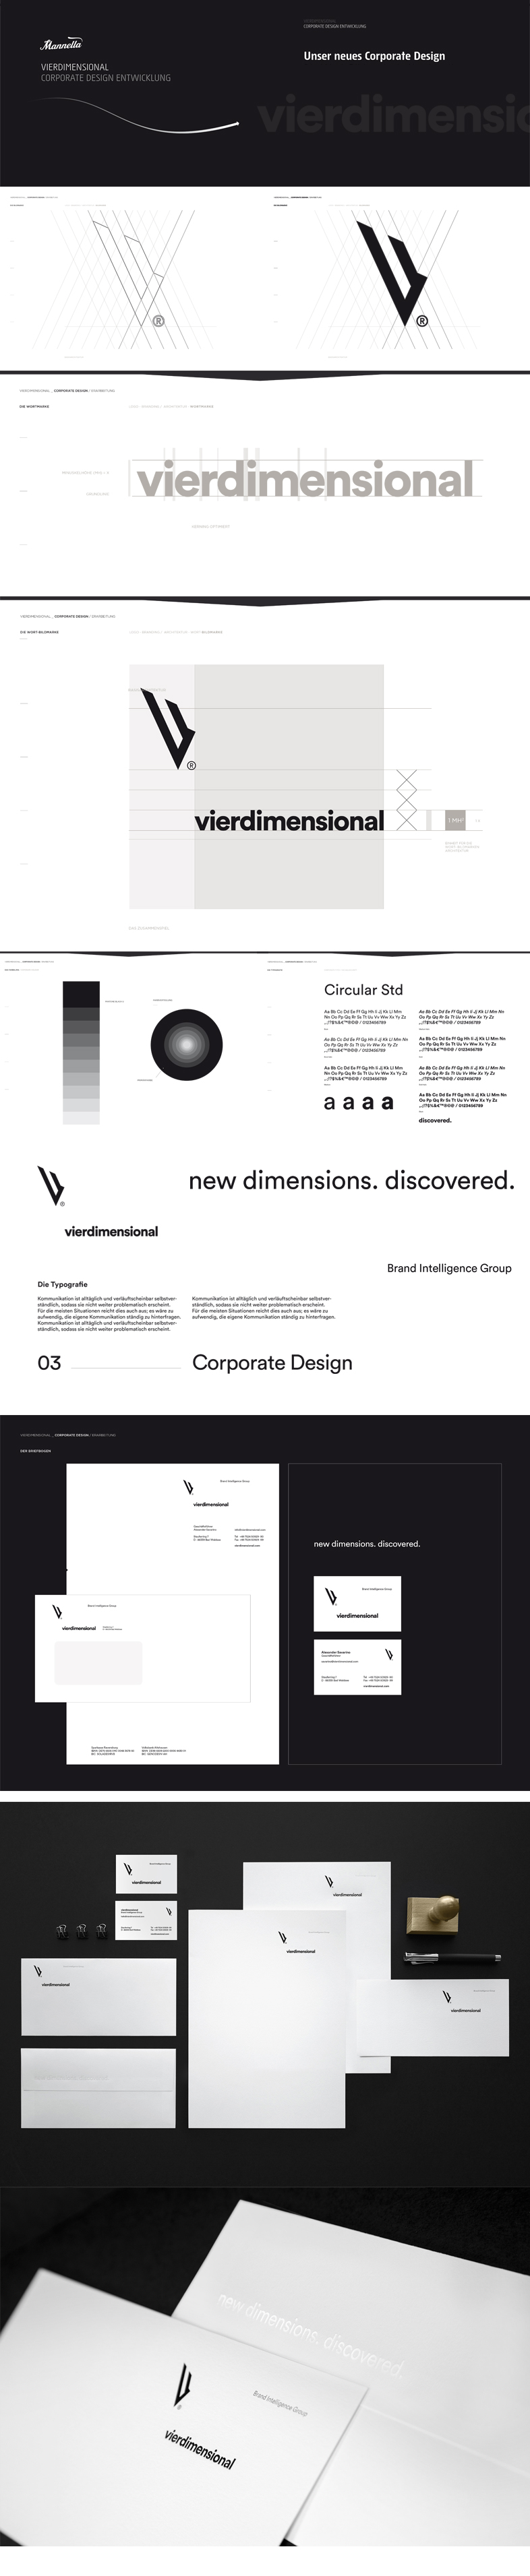 vierdimensional – Corporate Design (German Design Award 2019)